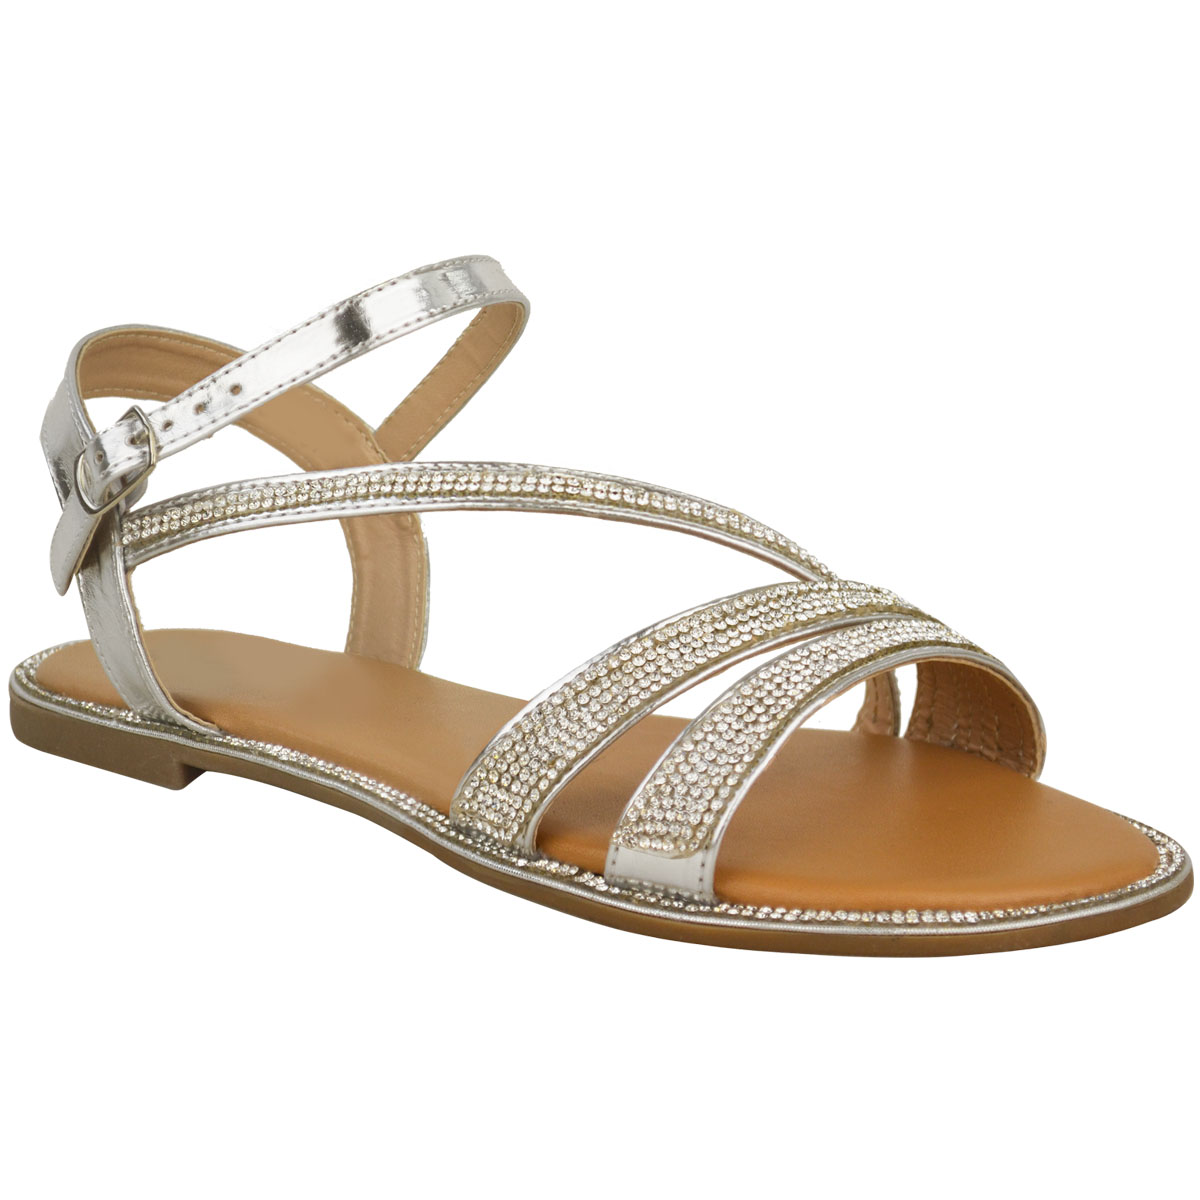 Women Flat Sandals Criss-Cross Open Toe Wide Elastic Strap Fashion Summer Shoes $ 10 99 Prime. 4 out of 5 stars Birkenstock. Gizeh Unisex Leather Sandals. from $ 95 95 Prime. out of 5 stars 1, CLARKS. Women's Leisa Annual Sandal. from $ 39 49 Prime. out of 5 stars 1, Skechers.